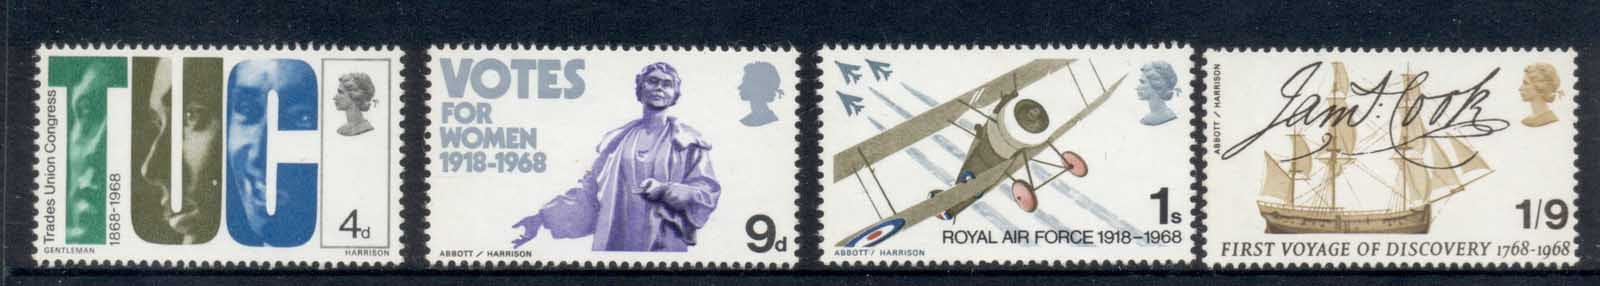 GB 1968 British Anniversaries MUH